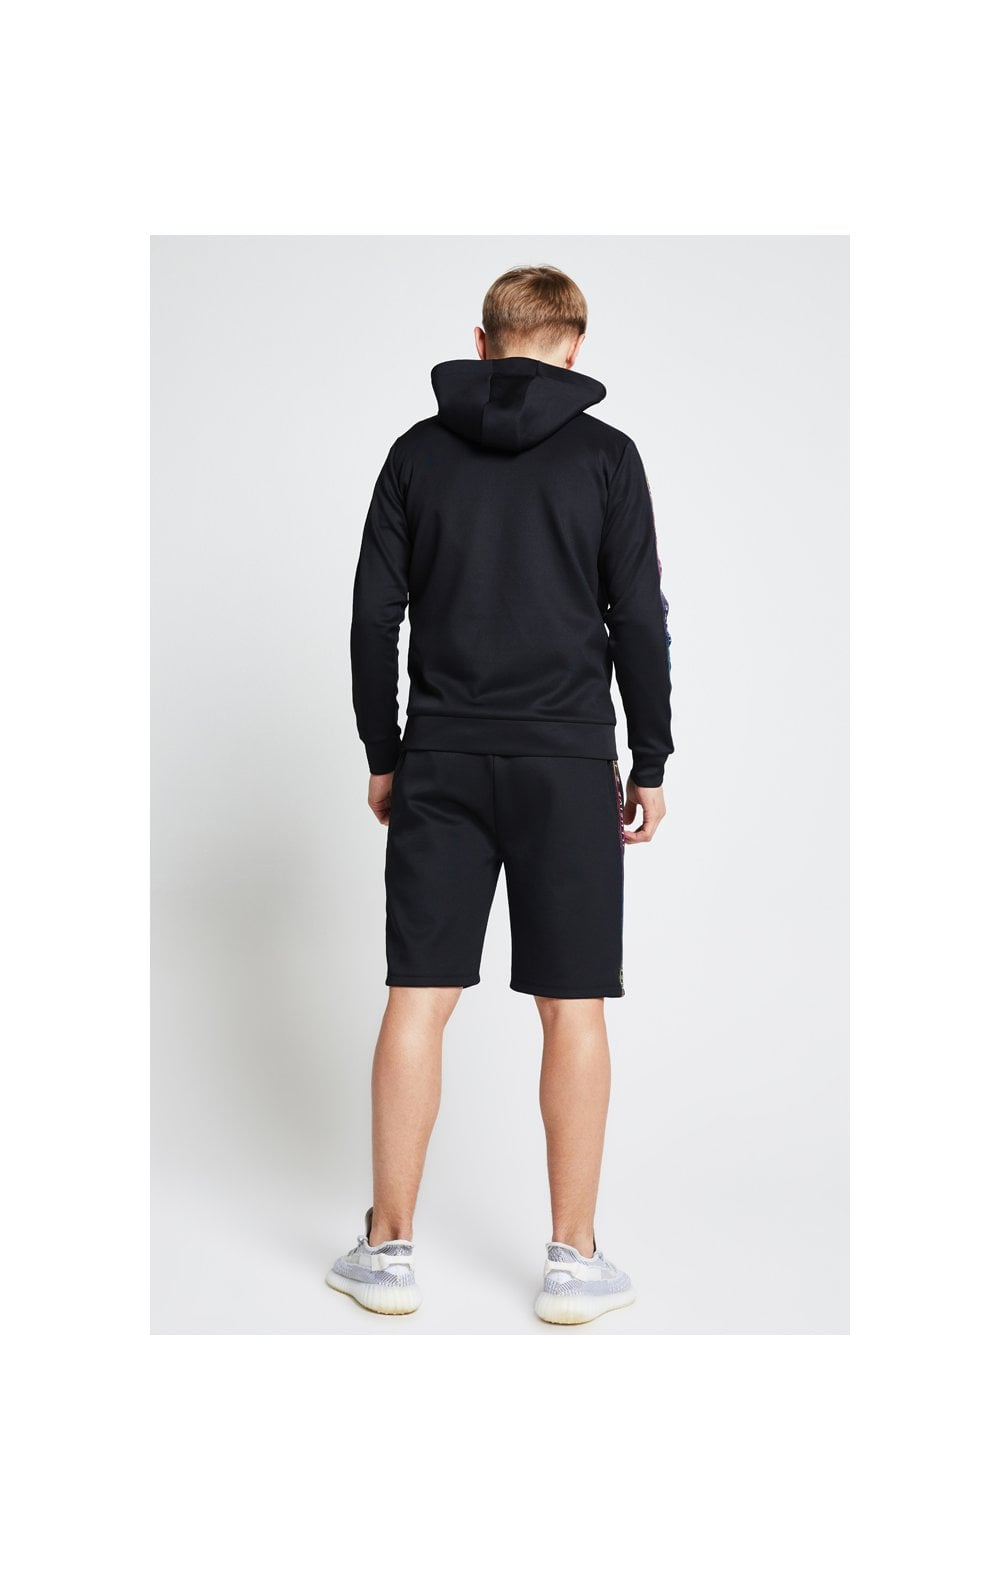 Illusive London Taped Overhead Hoodie - Black (6)